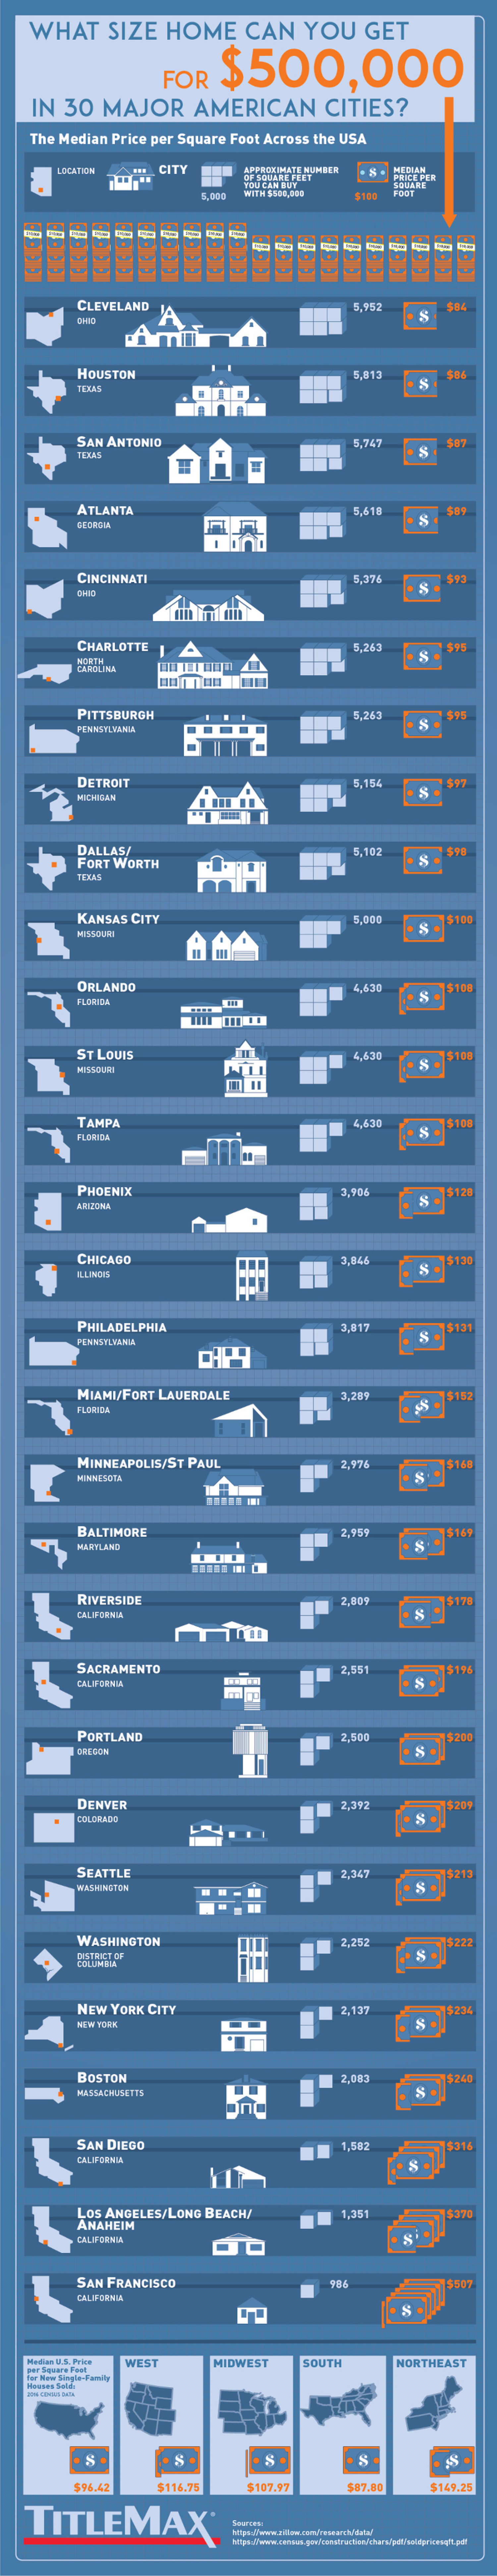 What Size Home Can You Get for $500k In 30 American Cities?